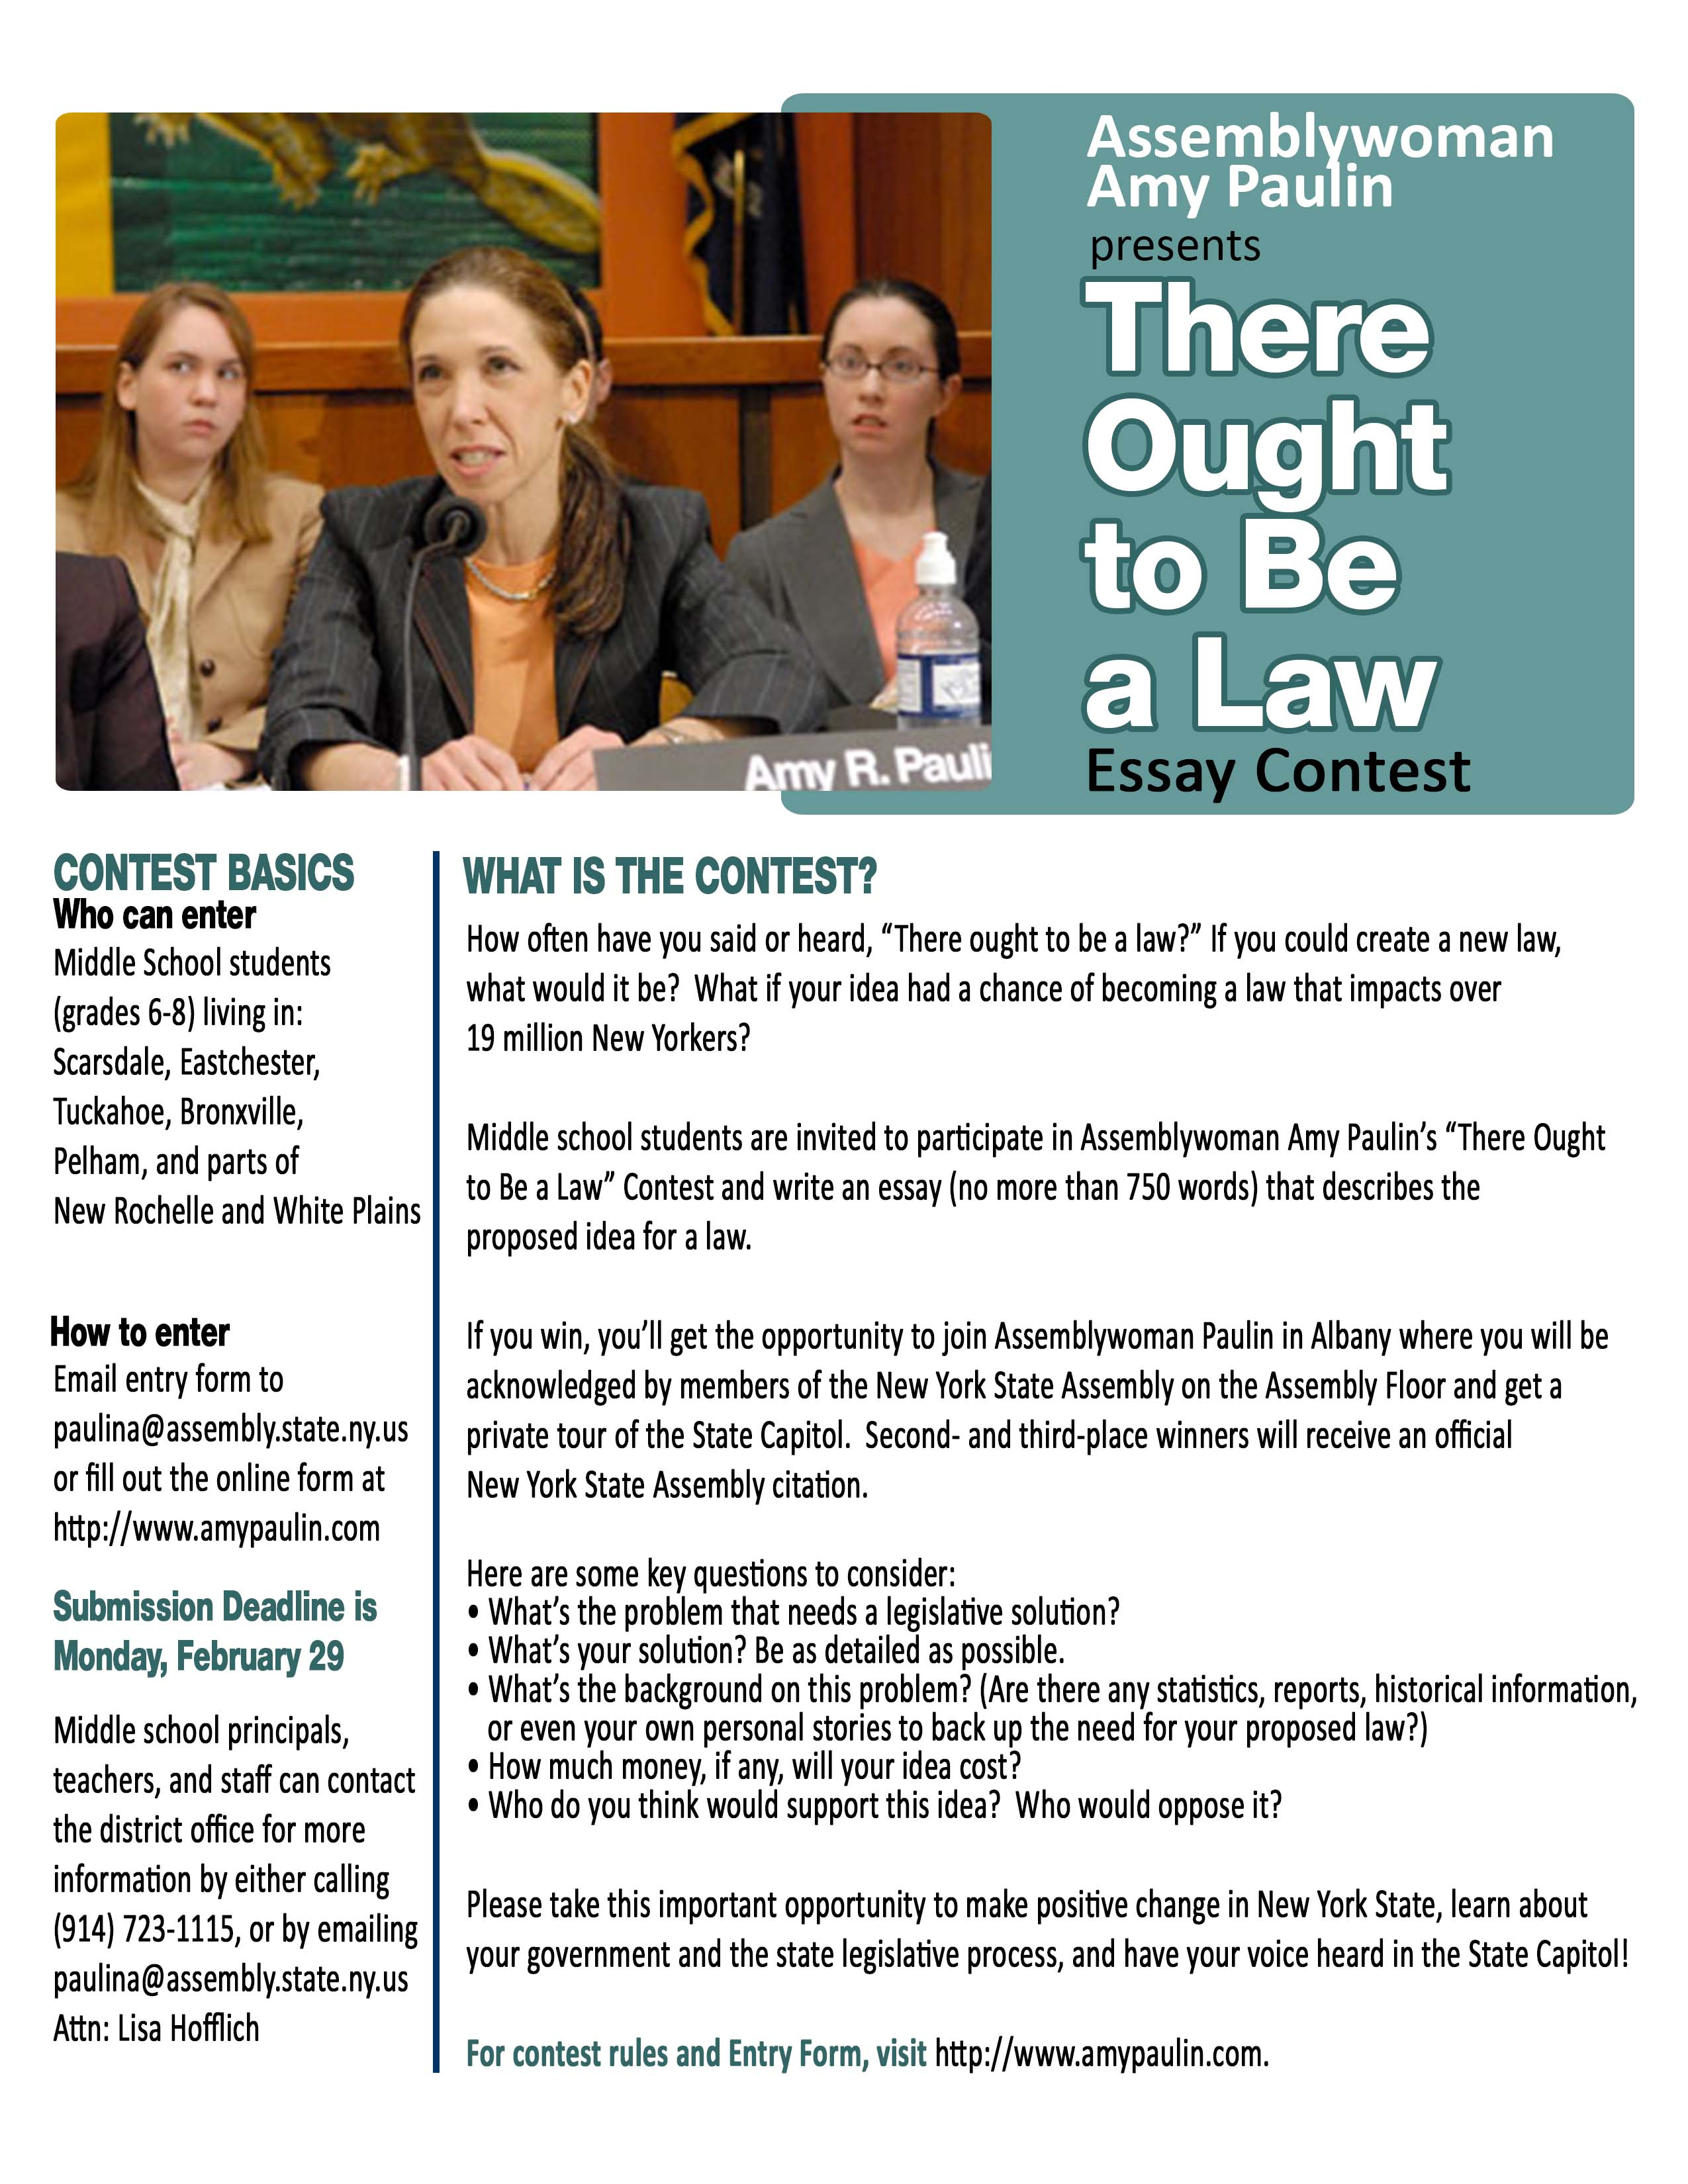 there ought to be a law essay contest